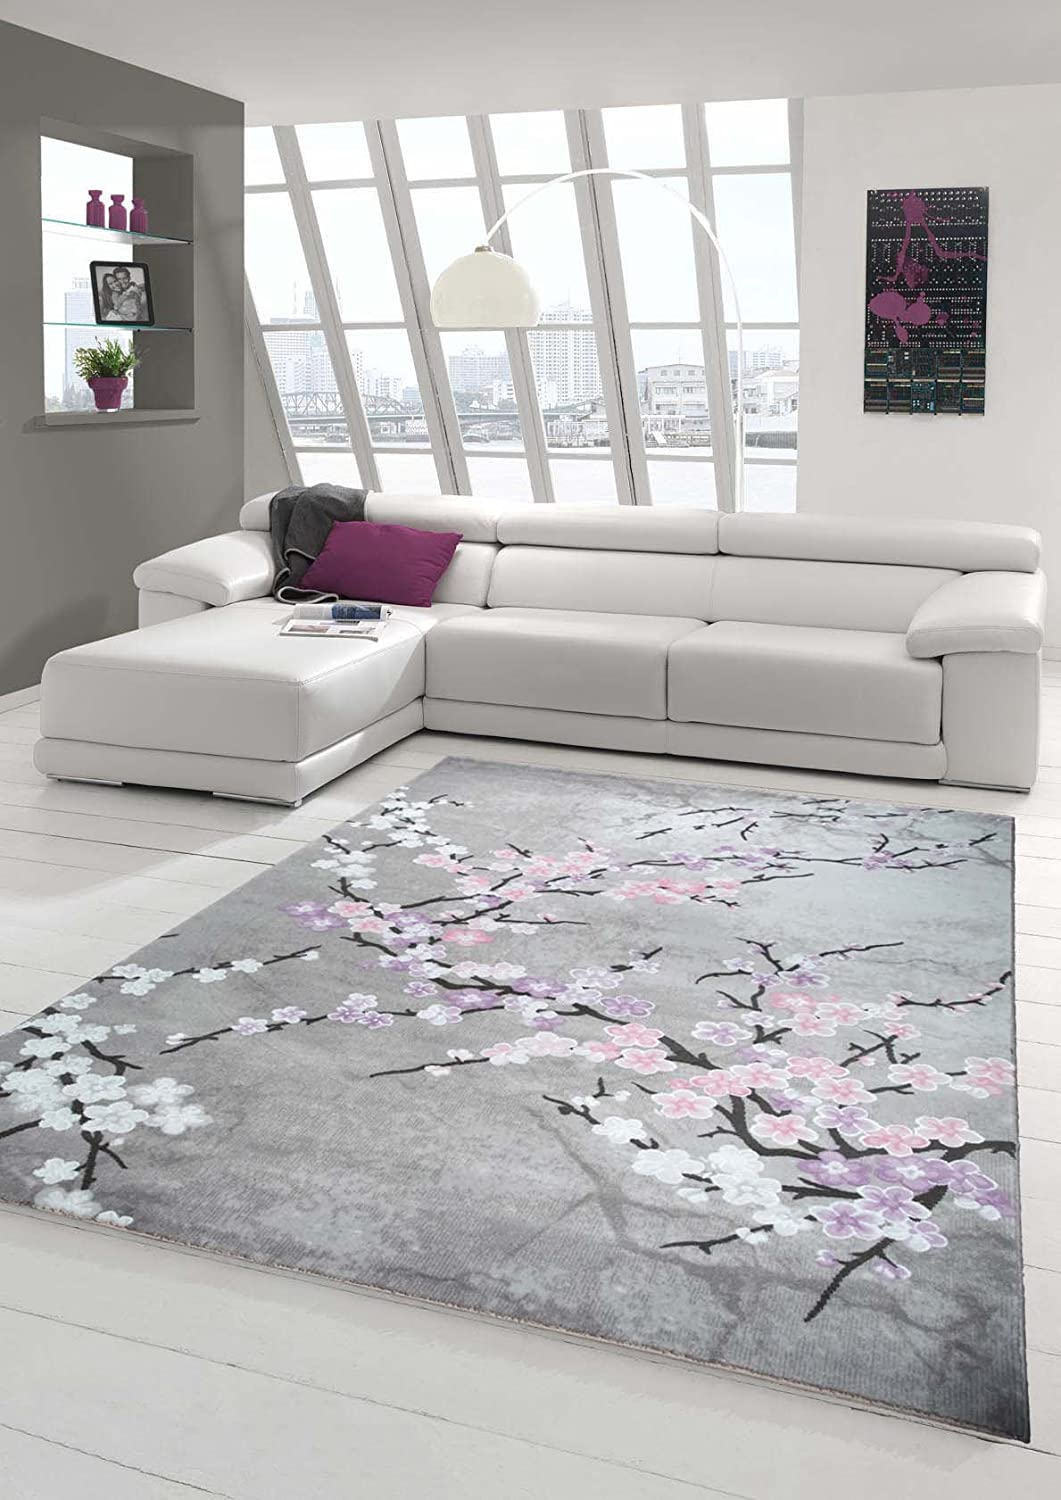 Designer Rug Contemporary Rug Wool Carpet Living Room Carpet Wool Rug With  Floral Pattern Pink Grey Cream Purple Size 80x150 Cm: Amazon.co.uk: Kitchen  U0026 ...